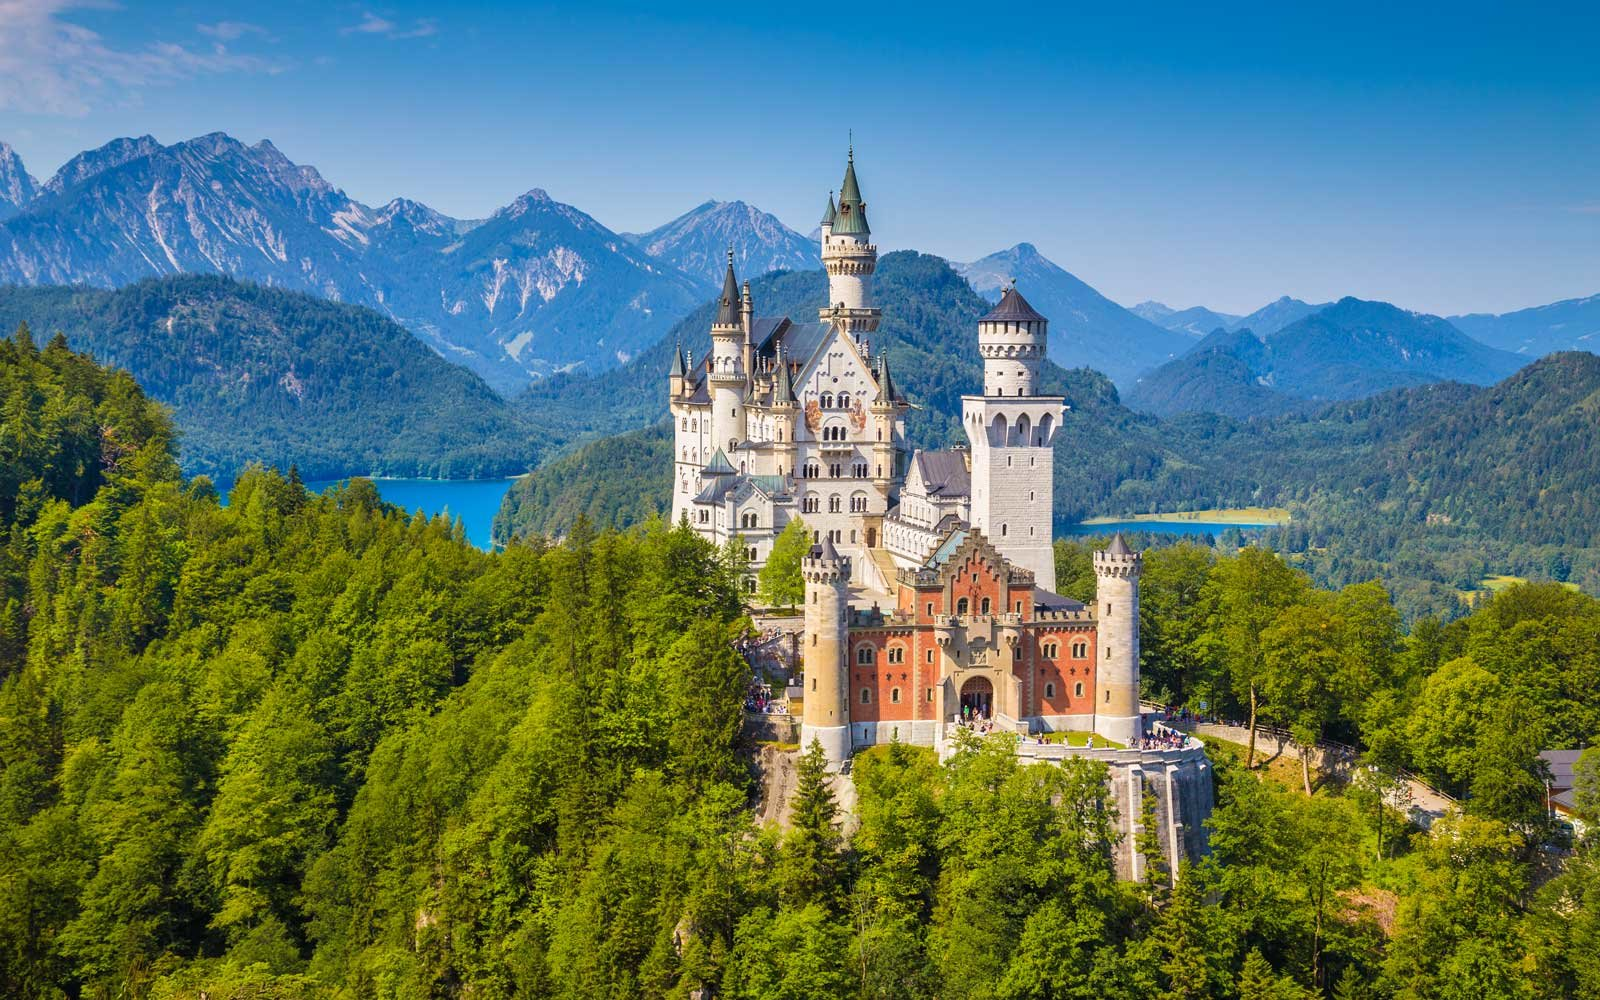 25 Facts About Neuschwanstein Castle in Germany | Travel + Leisure